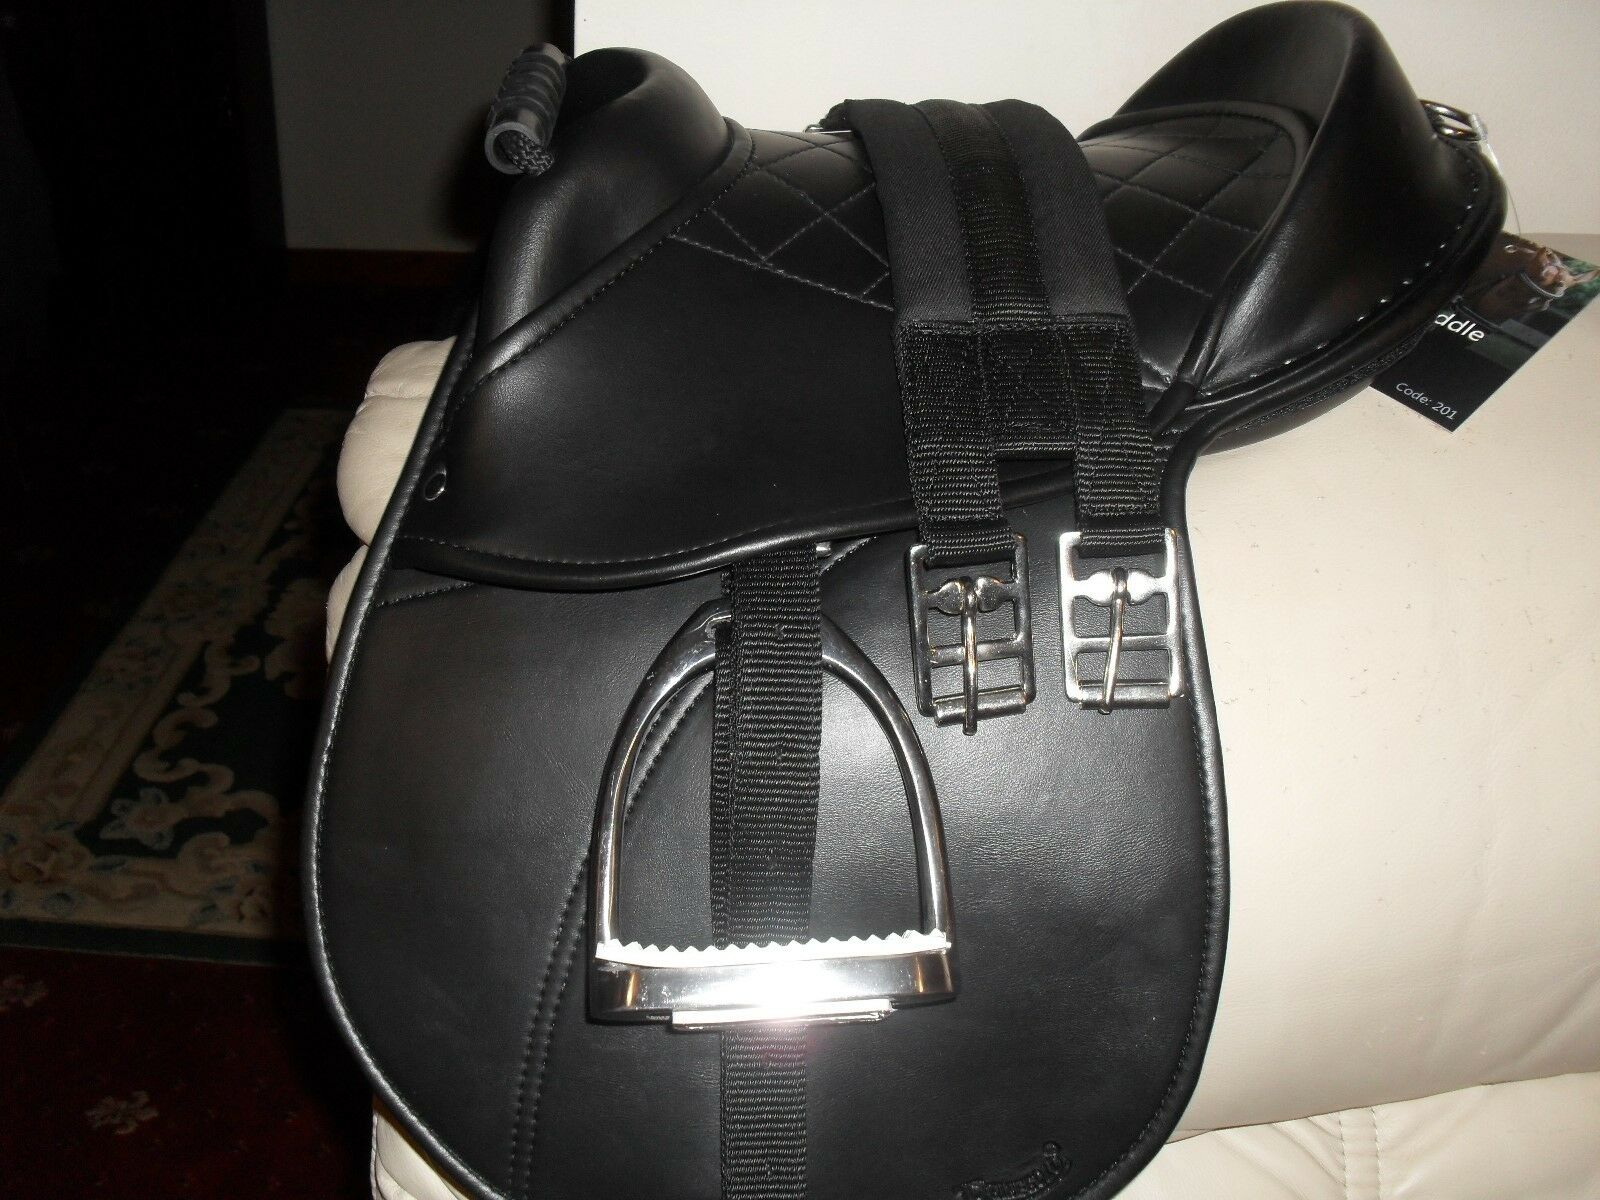 New Rhinegold Cub Saddle  Set,Saddle, Irons,Leathers,Girth, PRICE REDUCED TO SELL  all in high quality and low price